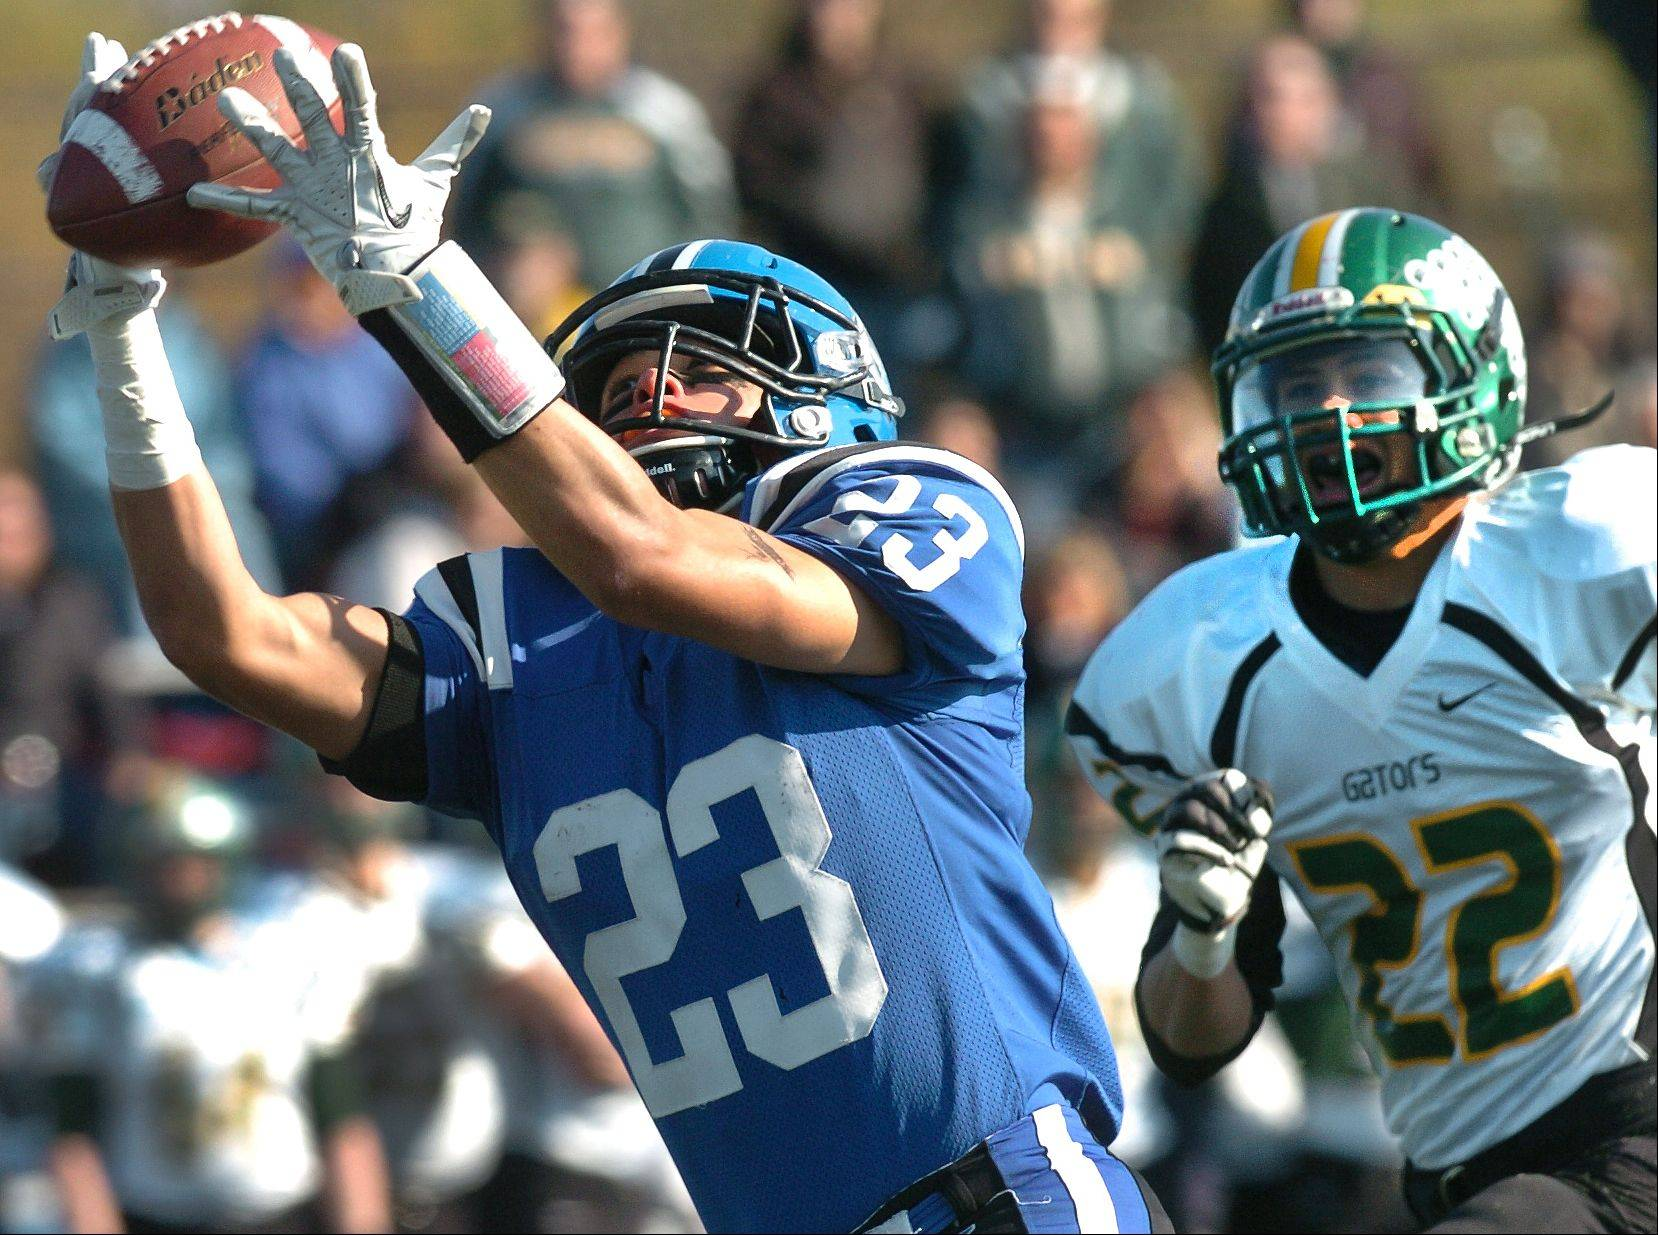 Images: Crystal Lake South vs. Lake Zurich football